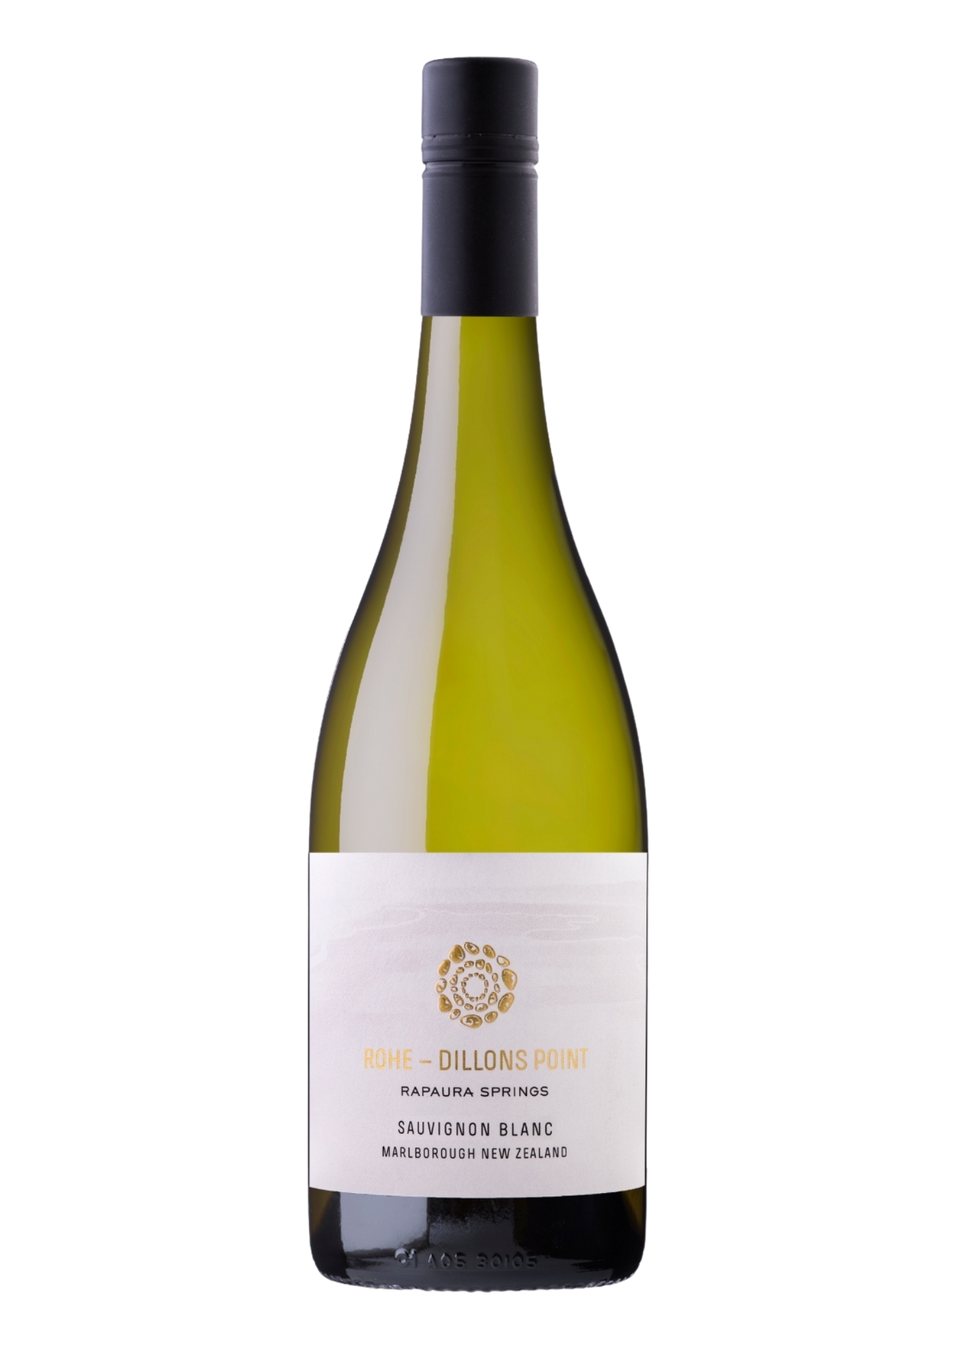 Rohe Dillions Point Sauvignon Blanc Marlborough